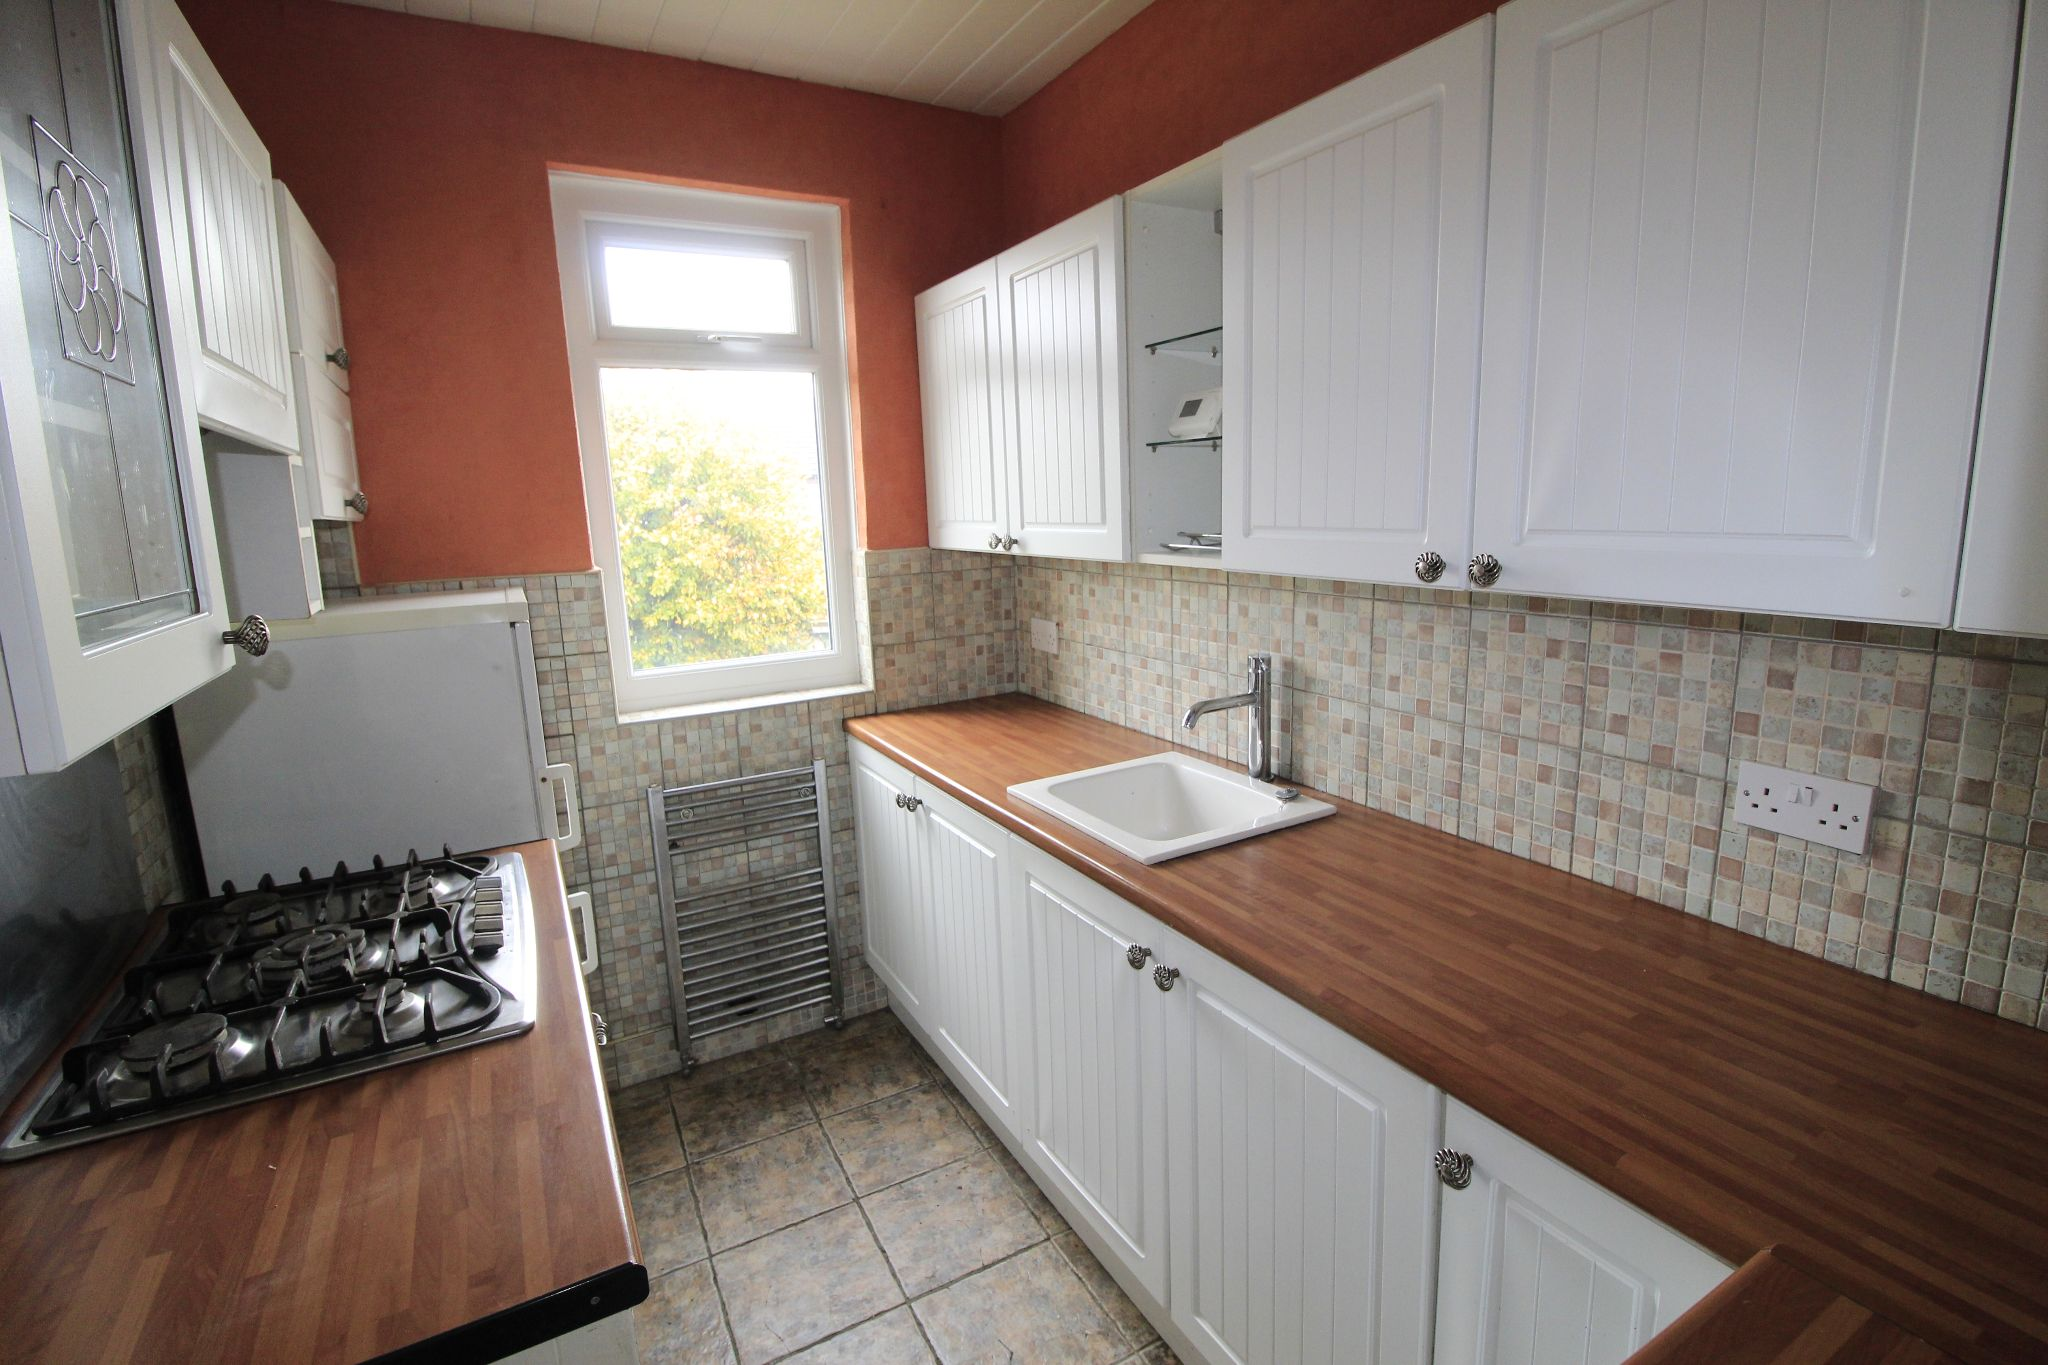 3 bedroom end terraced house Let in Bradford - Kitchen